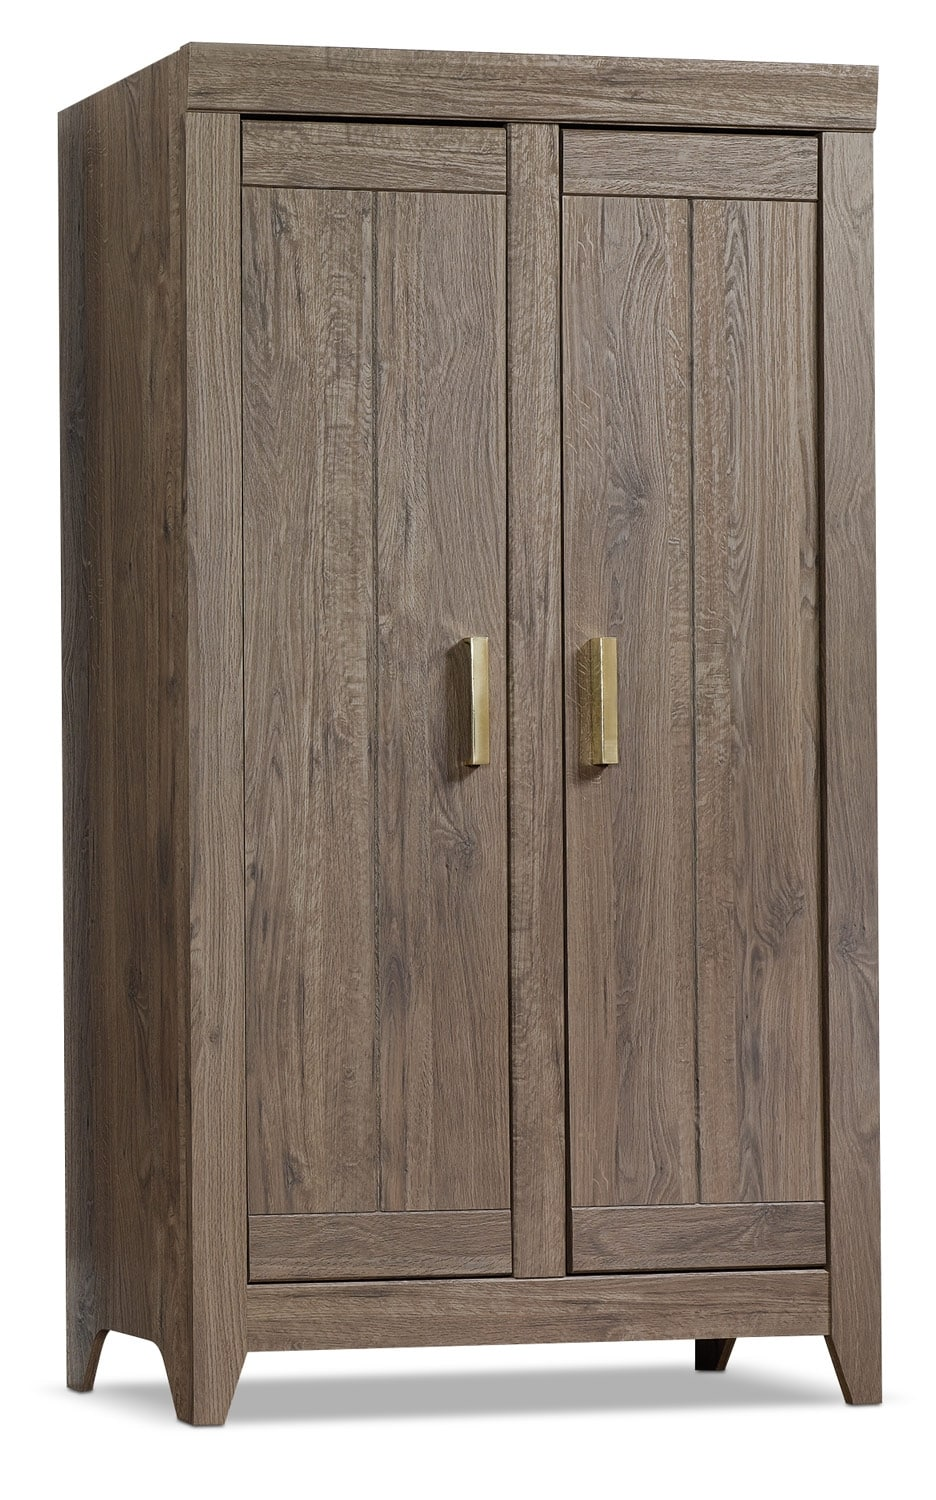 Accent and Occasional Furniture - Adept Wide Storage Cabinet - Fossil Oak